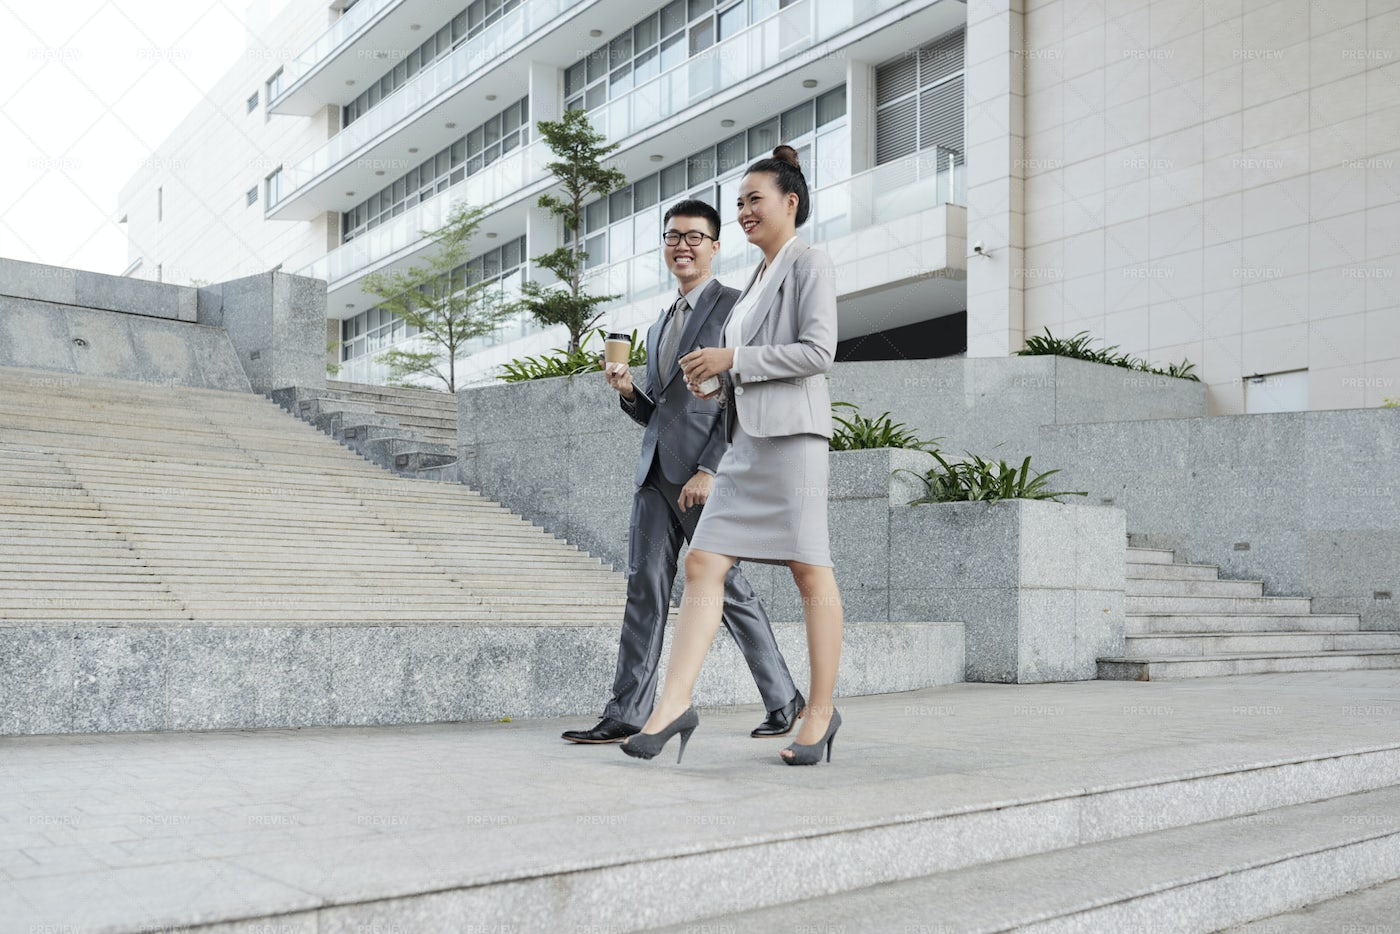 Business Couple Walking In The City: Stock Photos